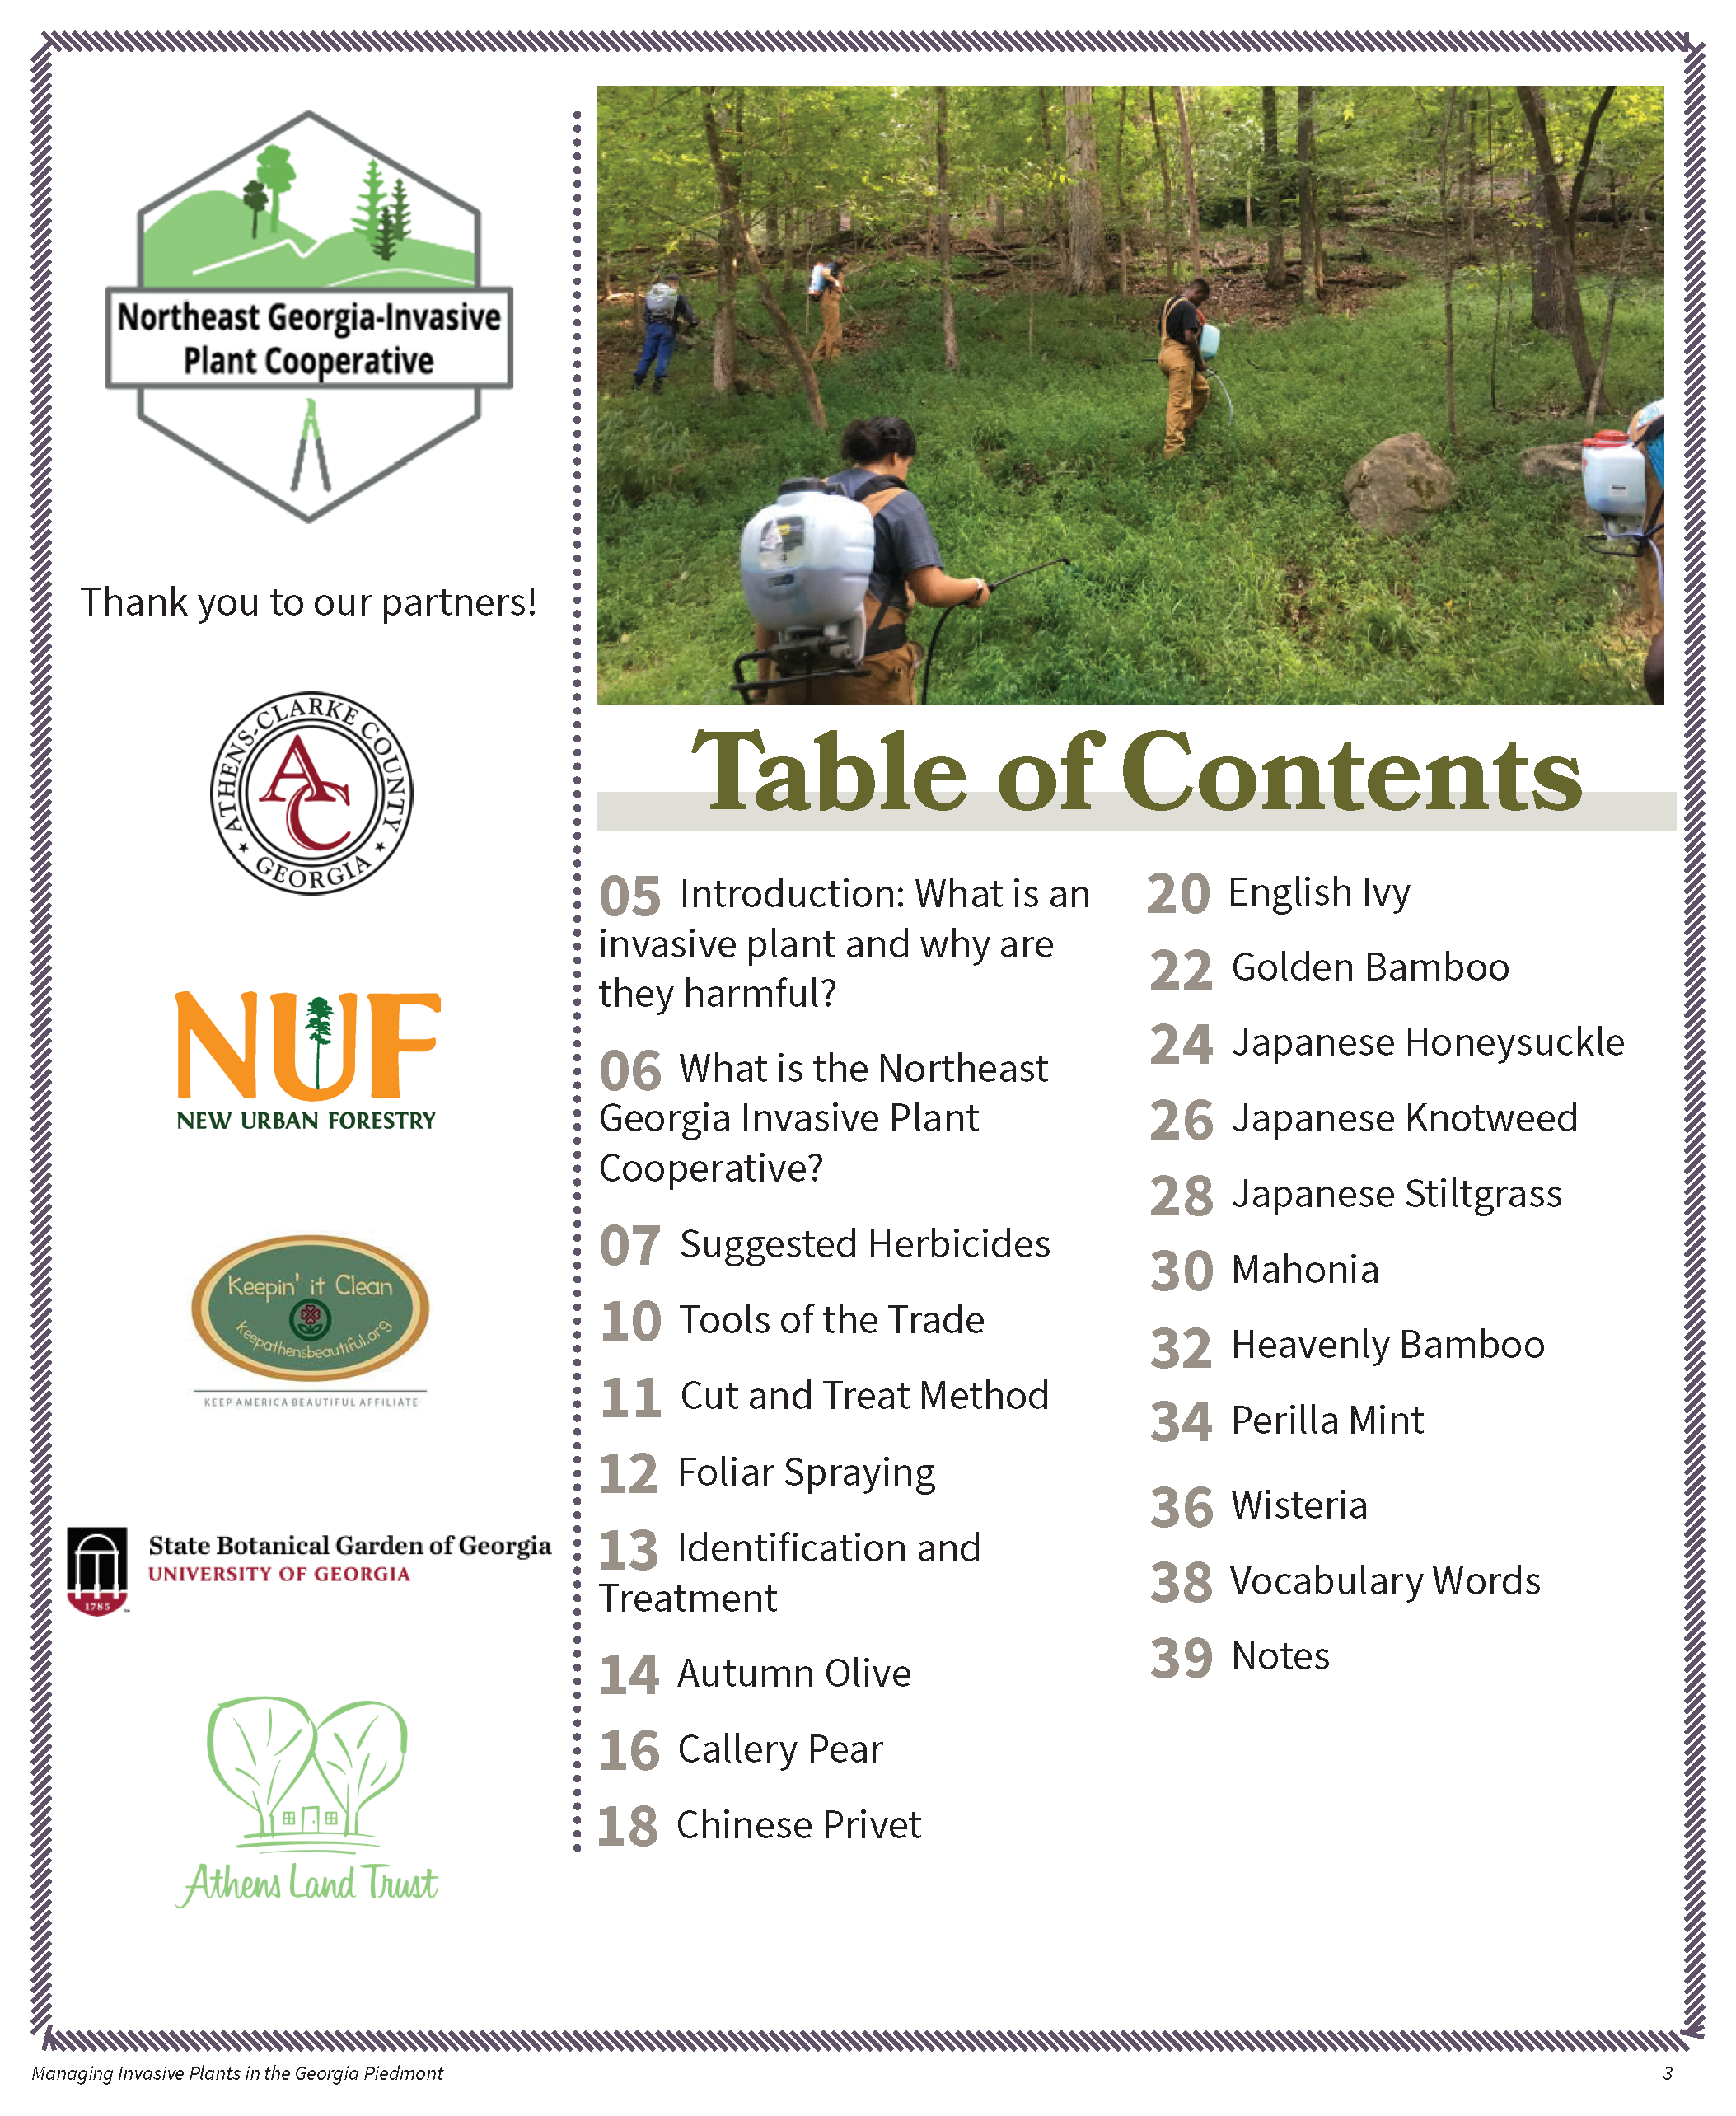 Managing Invasive Plants in the GA Piedmont for web_Page_02